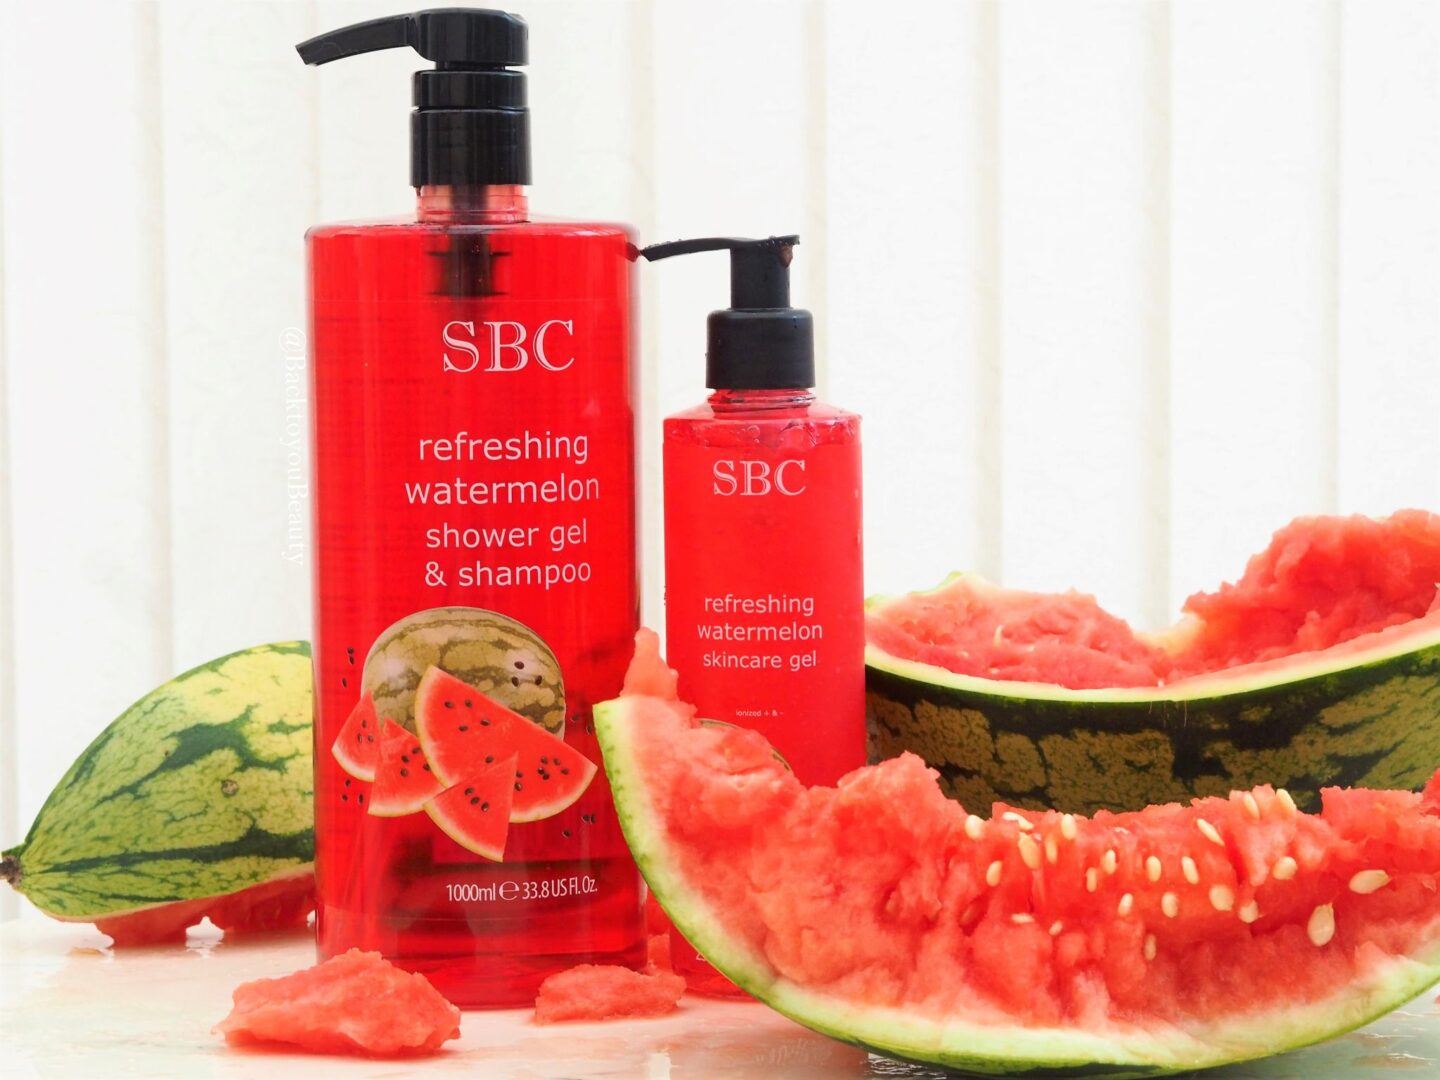 SBC Watermelon collection